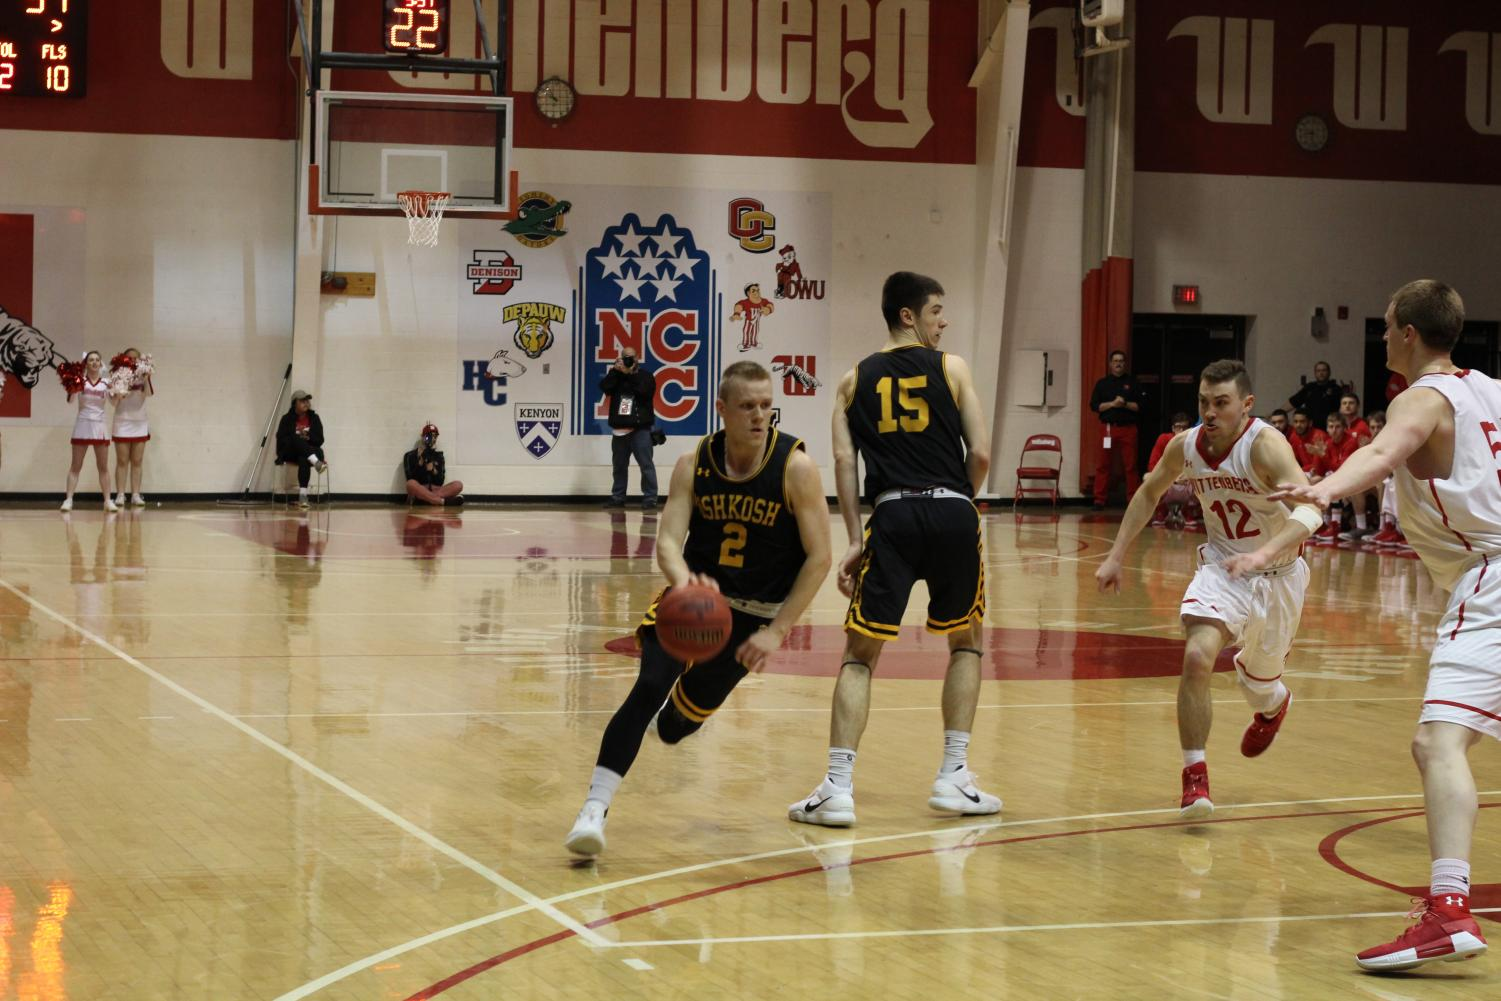 Junior guard Ben Boots (No. 2) drives around a screen set by sophomore forward Adam Fravert (No. 15) during the second round game against Wittenberg University.